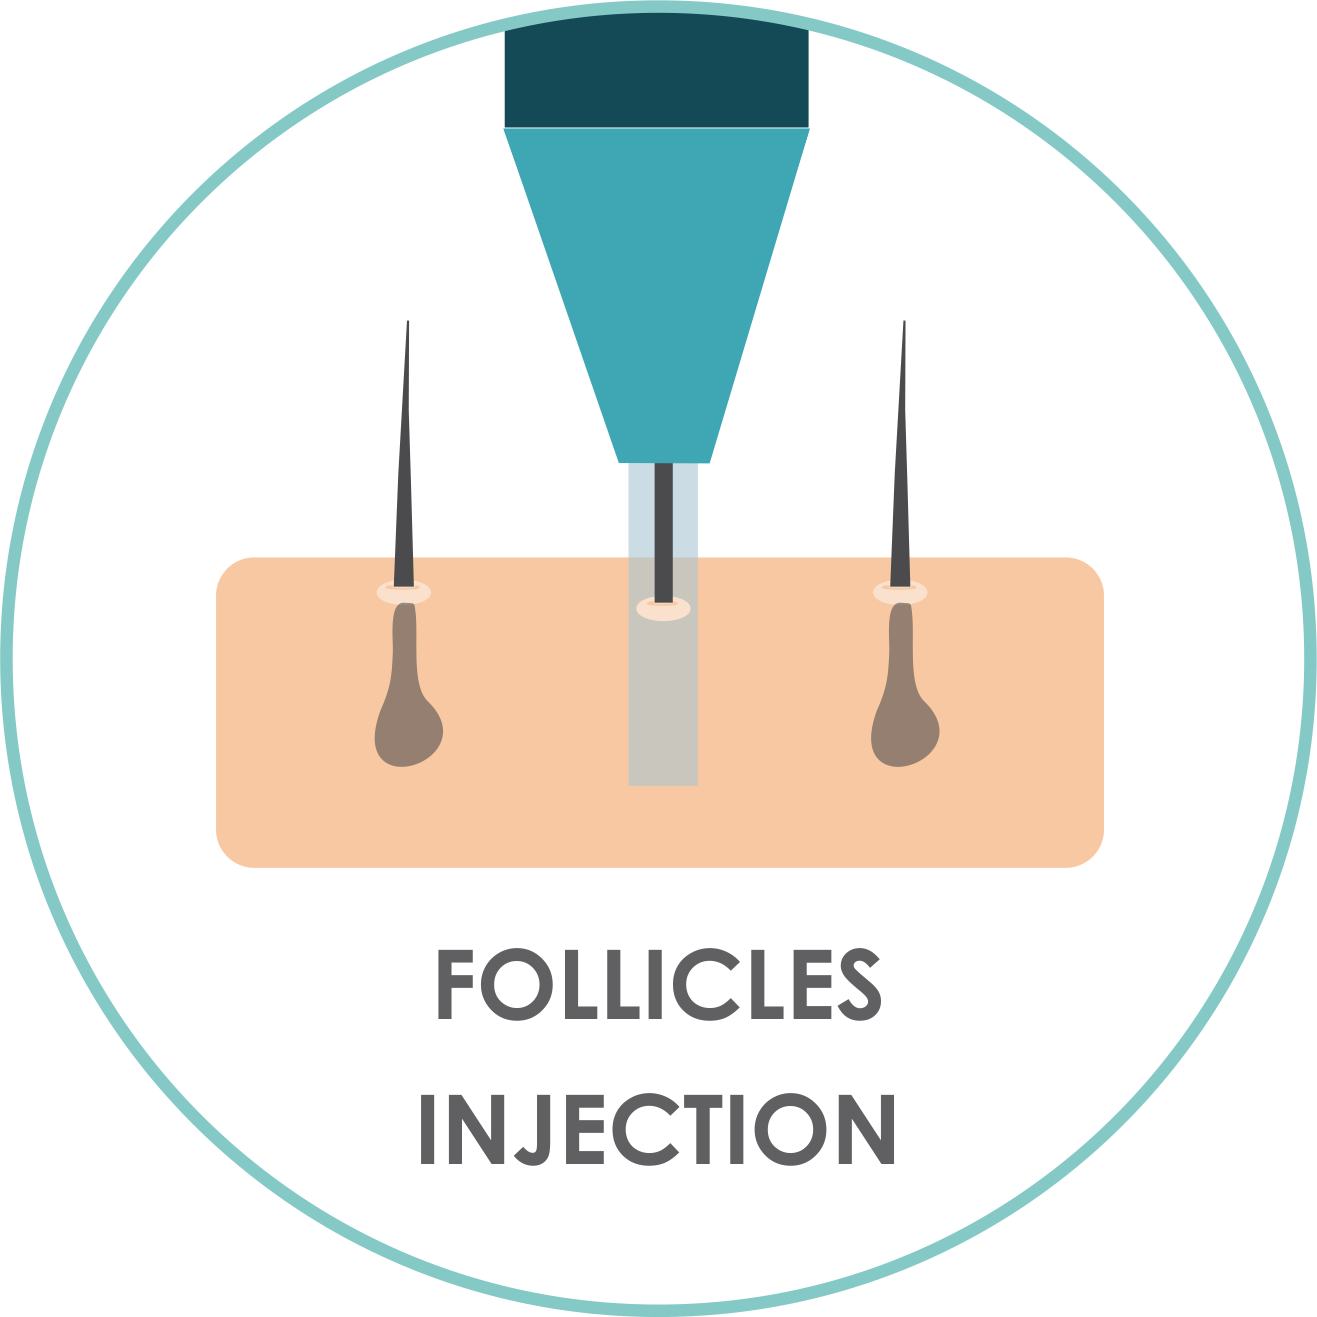 Folliciles Injection